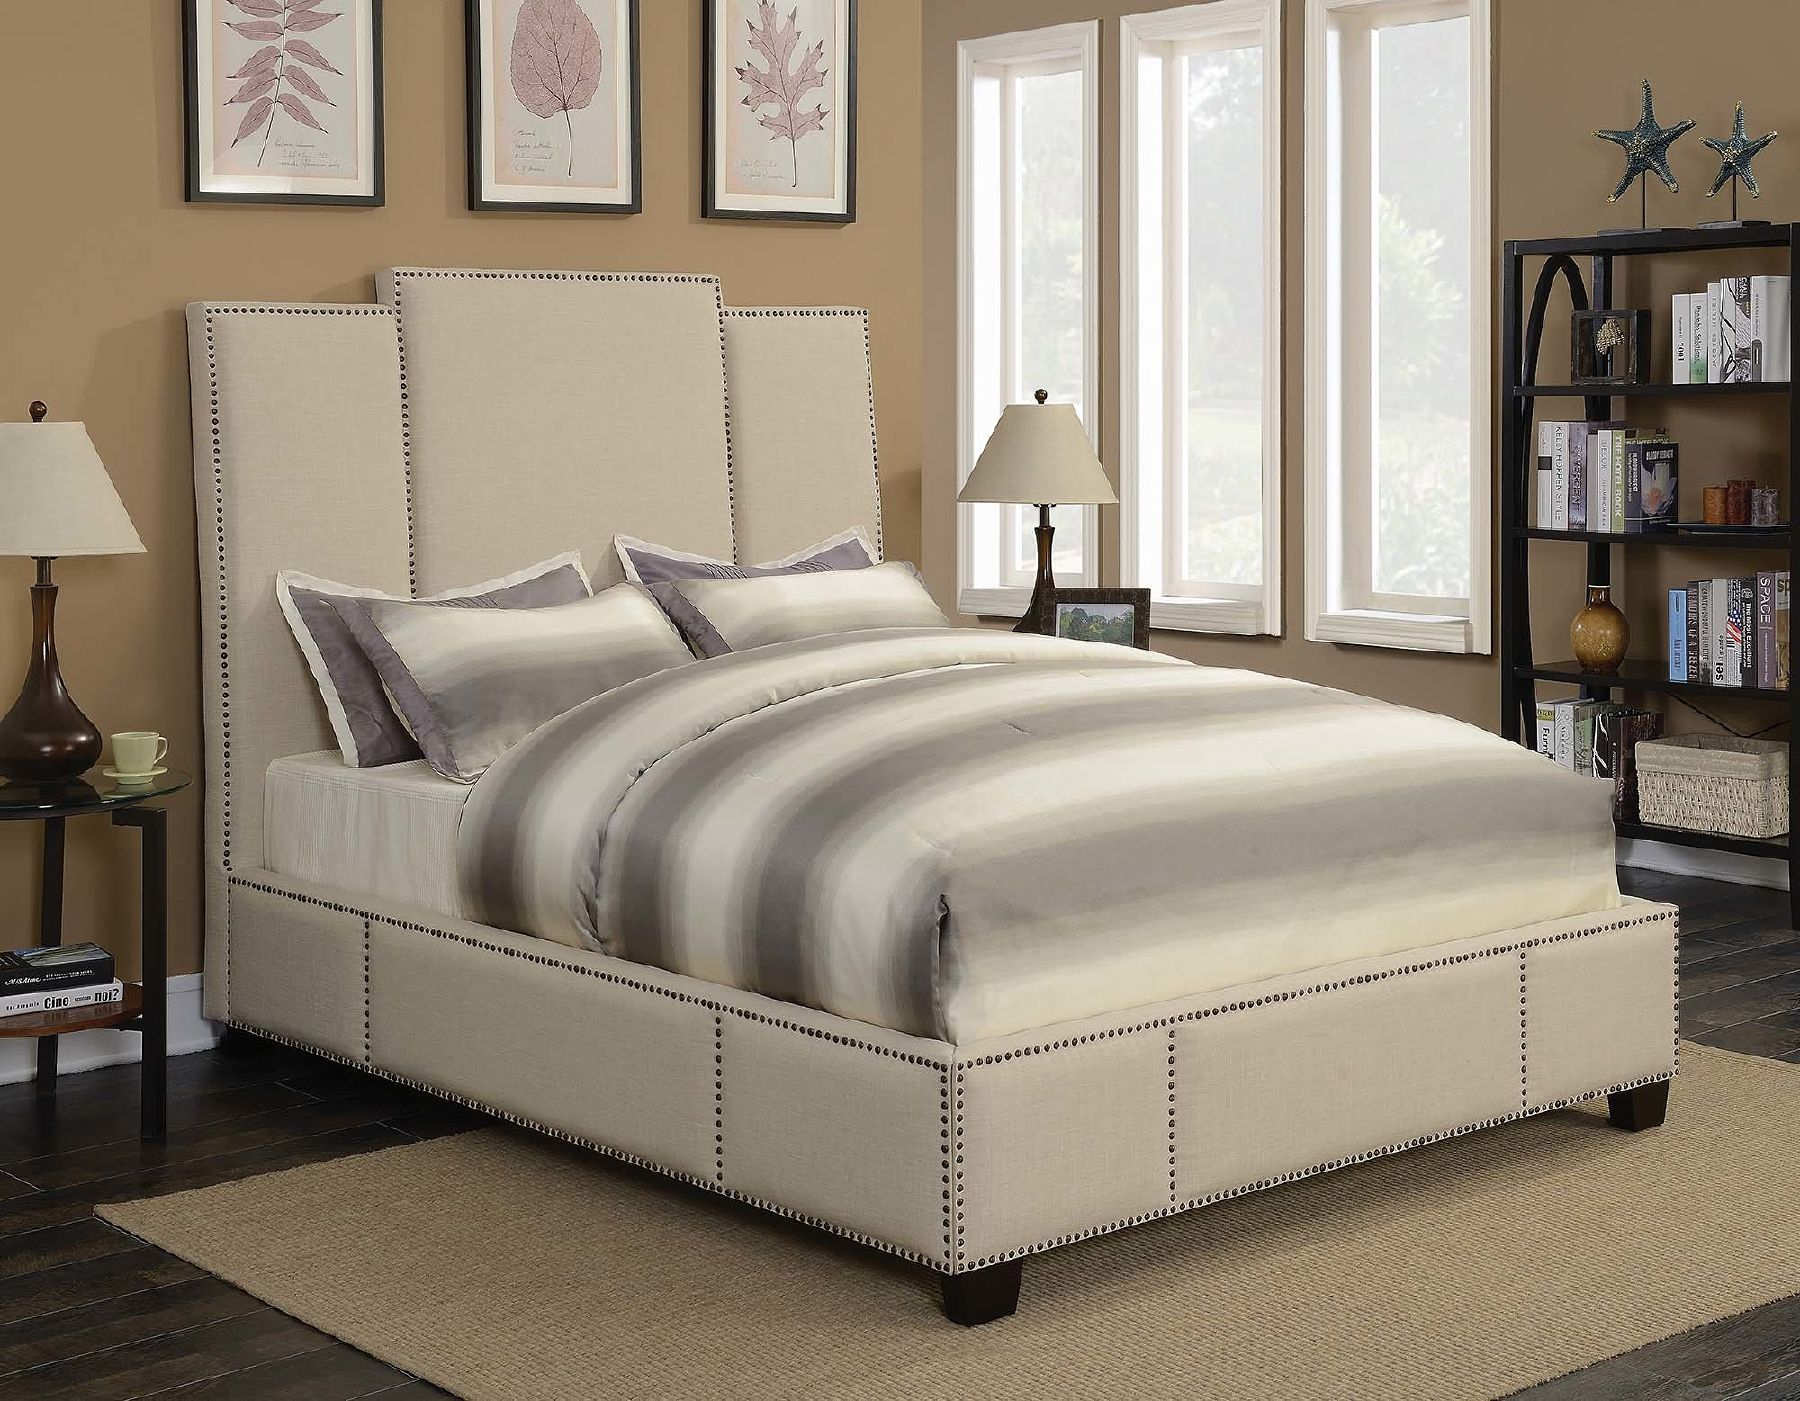 Lawndale Beige Queen Size Bed in 2020 Upholstered beds